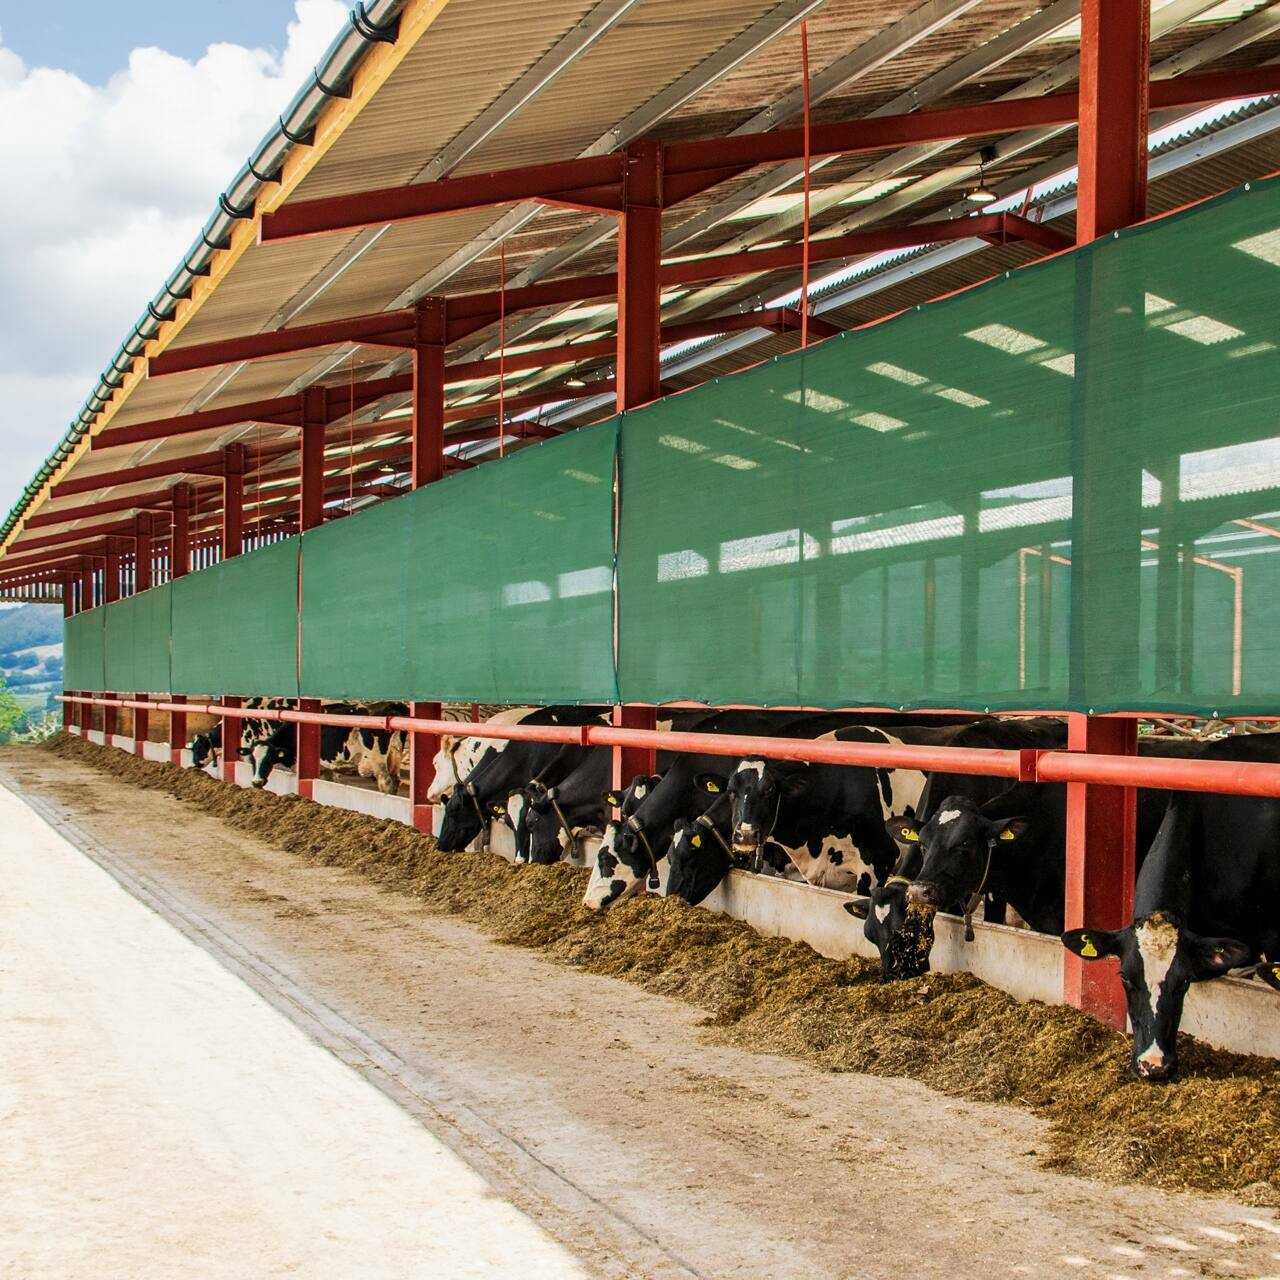 Mesh Livestock Panels [Windbreaks For Farm Buildings]